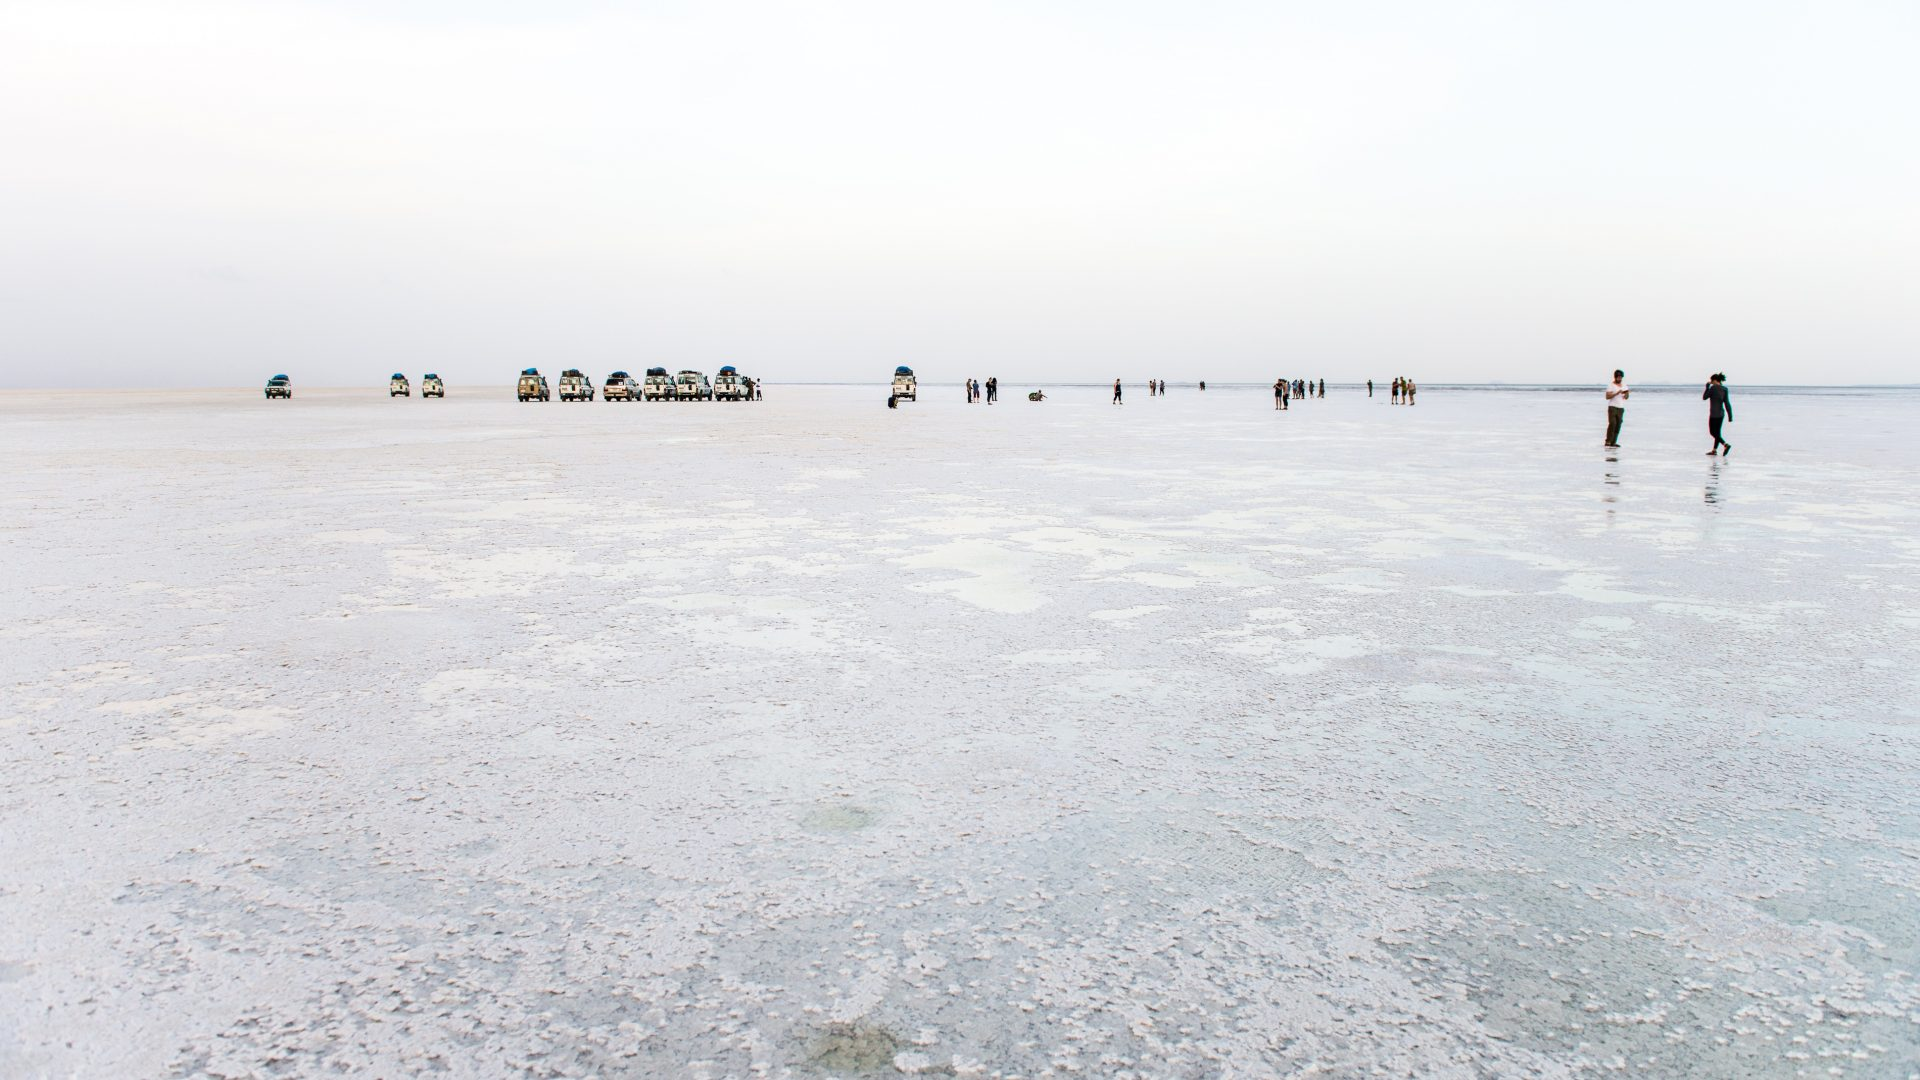 Appearing small in the distance, jeeps and tourists can be seen waiting in a row on the salt plains in the North East of Ethiopia.